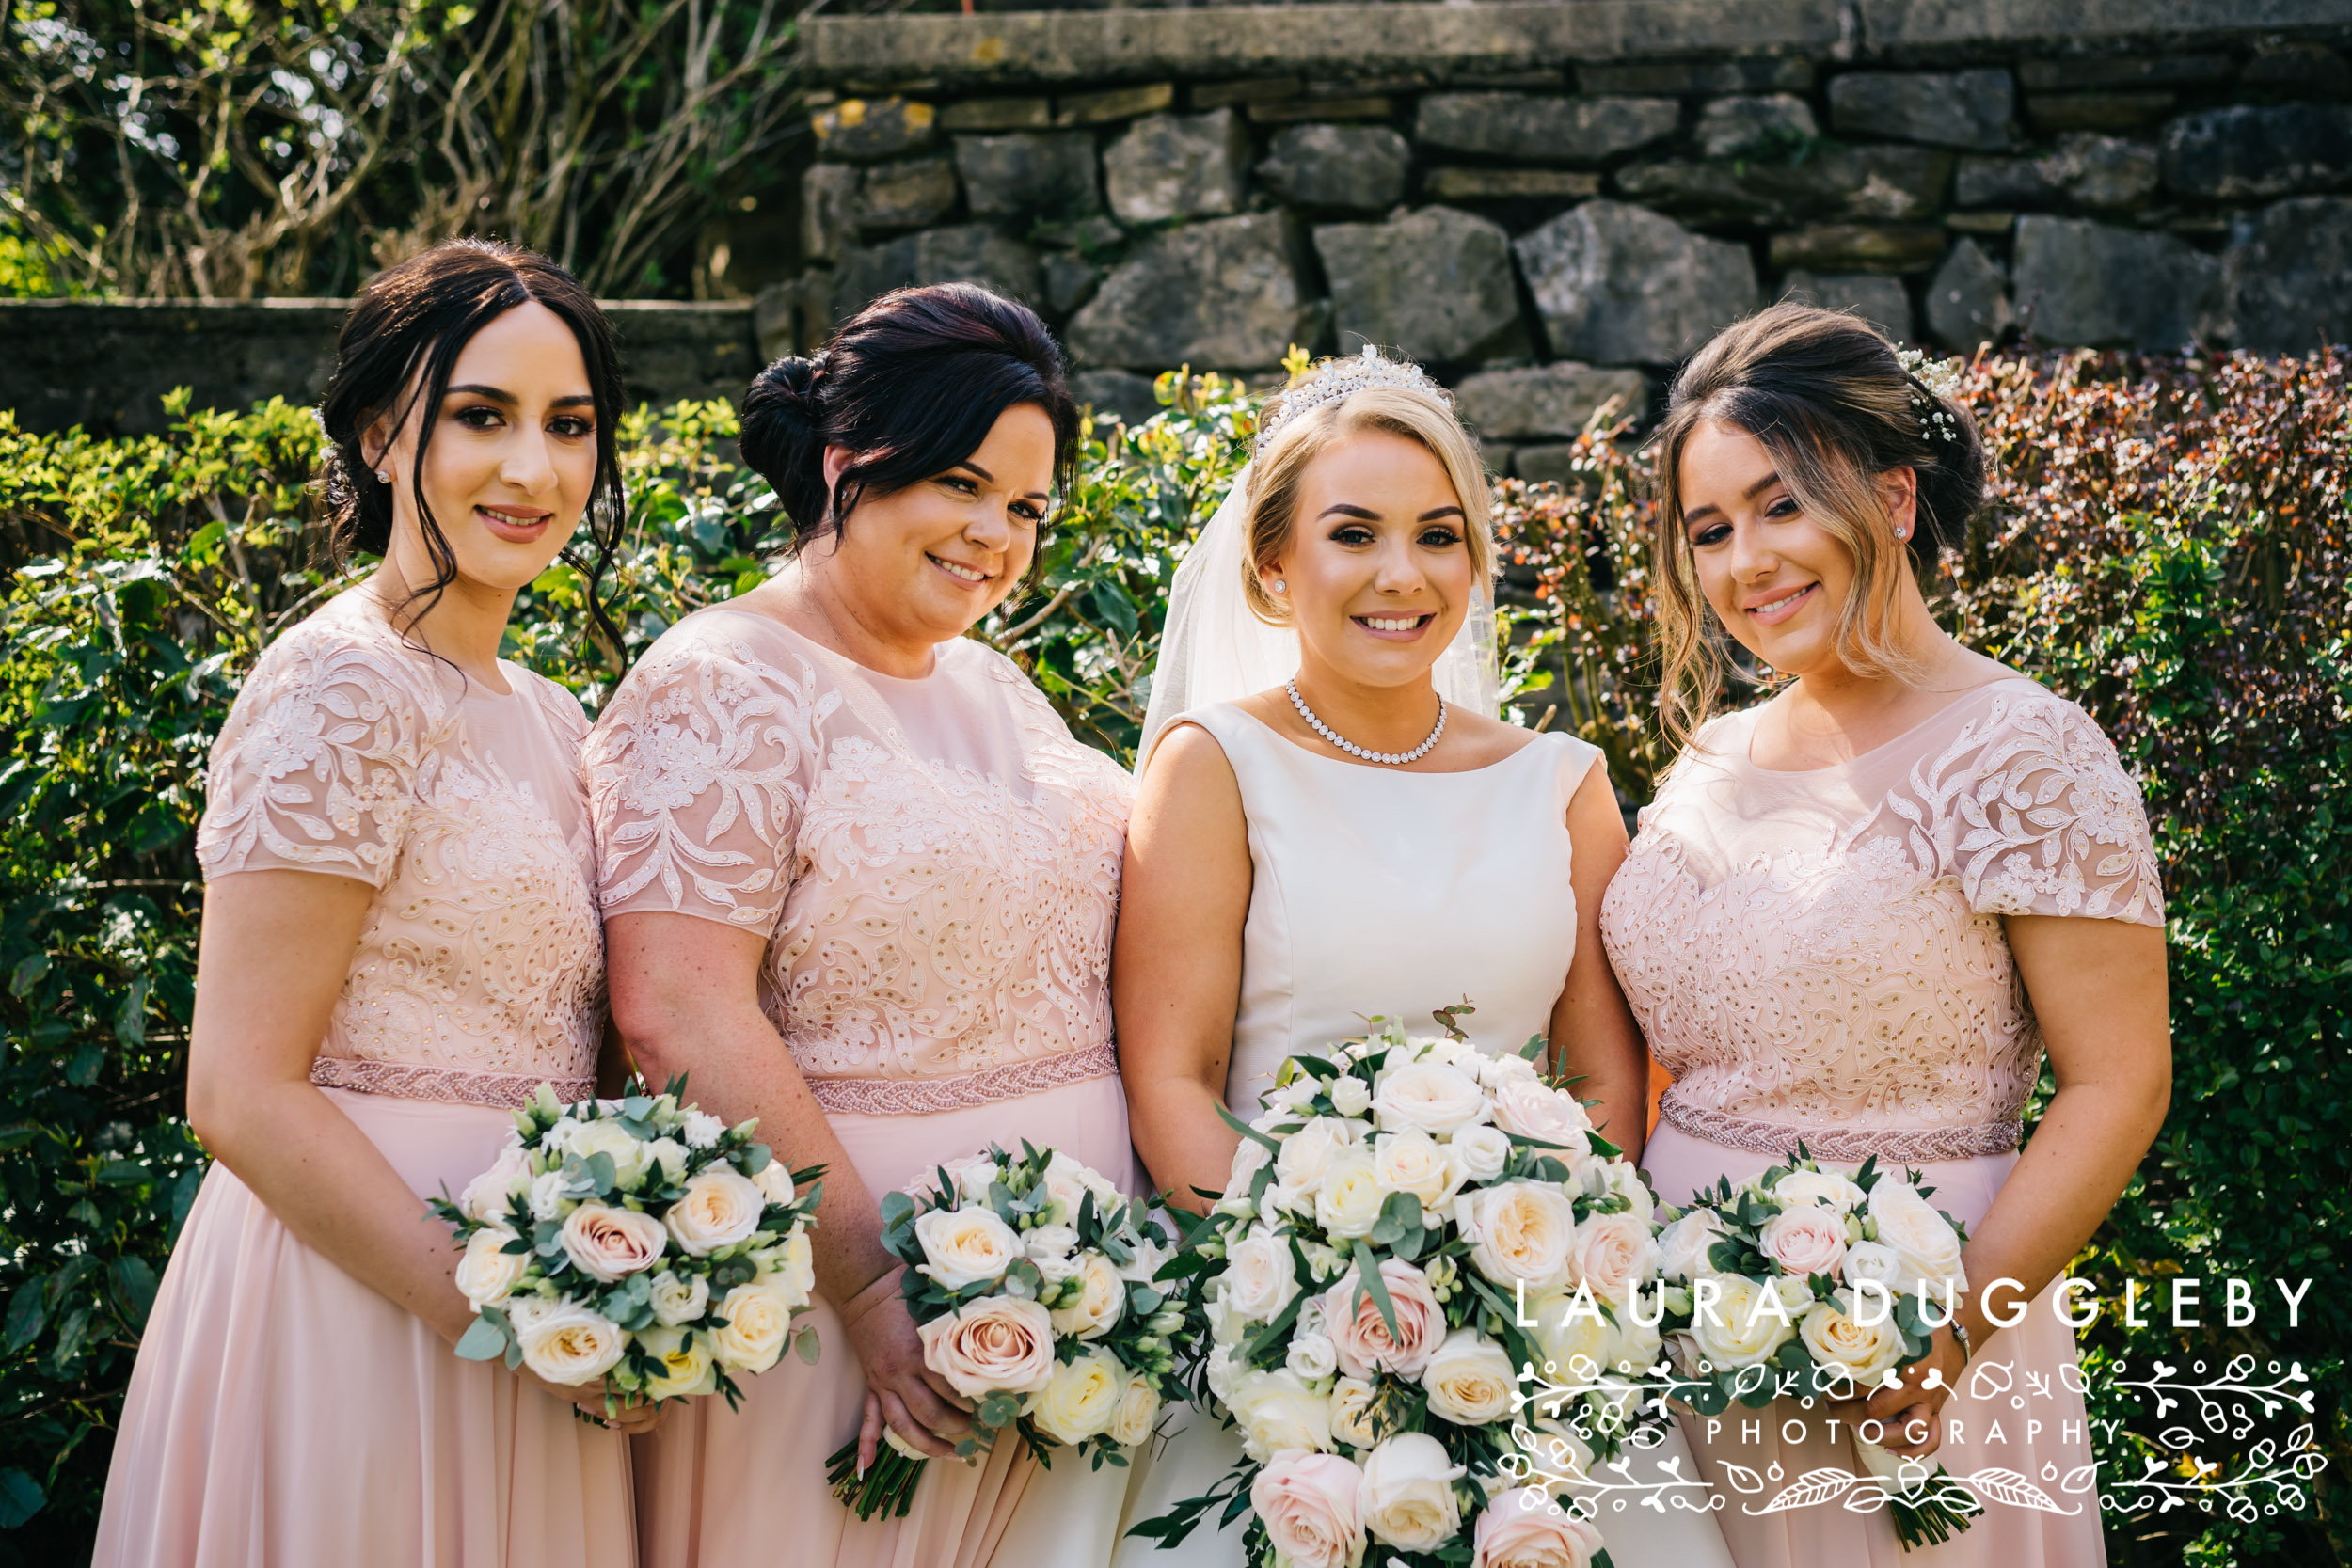 Stirk Hpuse Wedding Photography - Lancashire Photographer-29.jpg